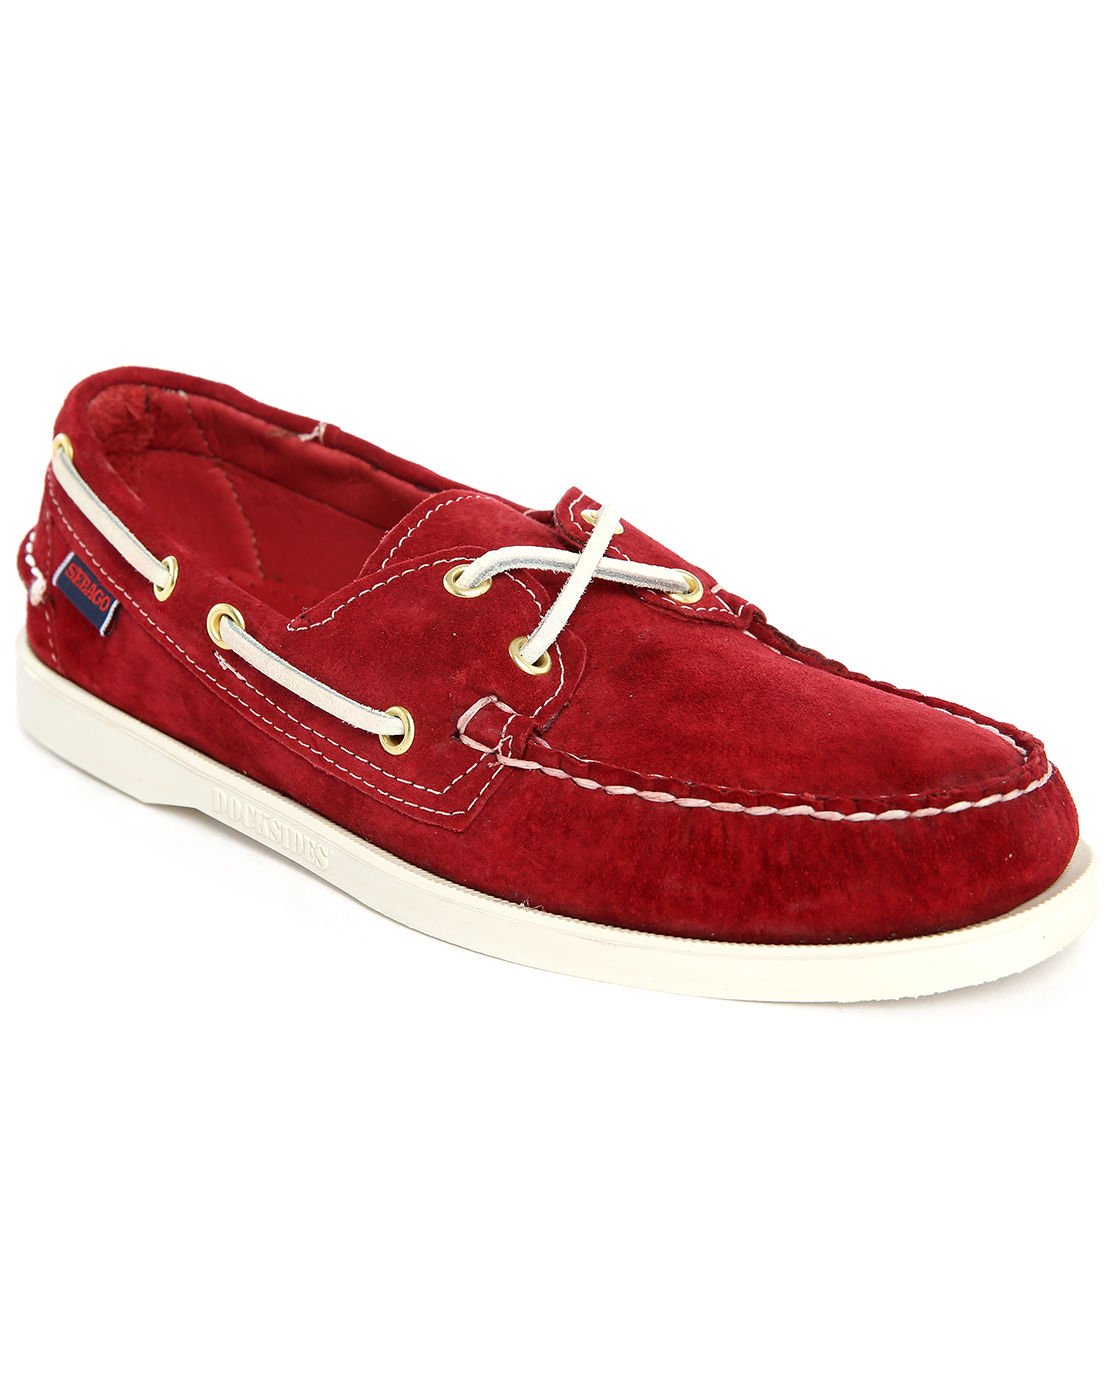 how to clean sebago shoes